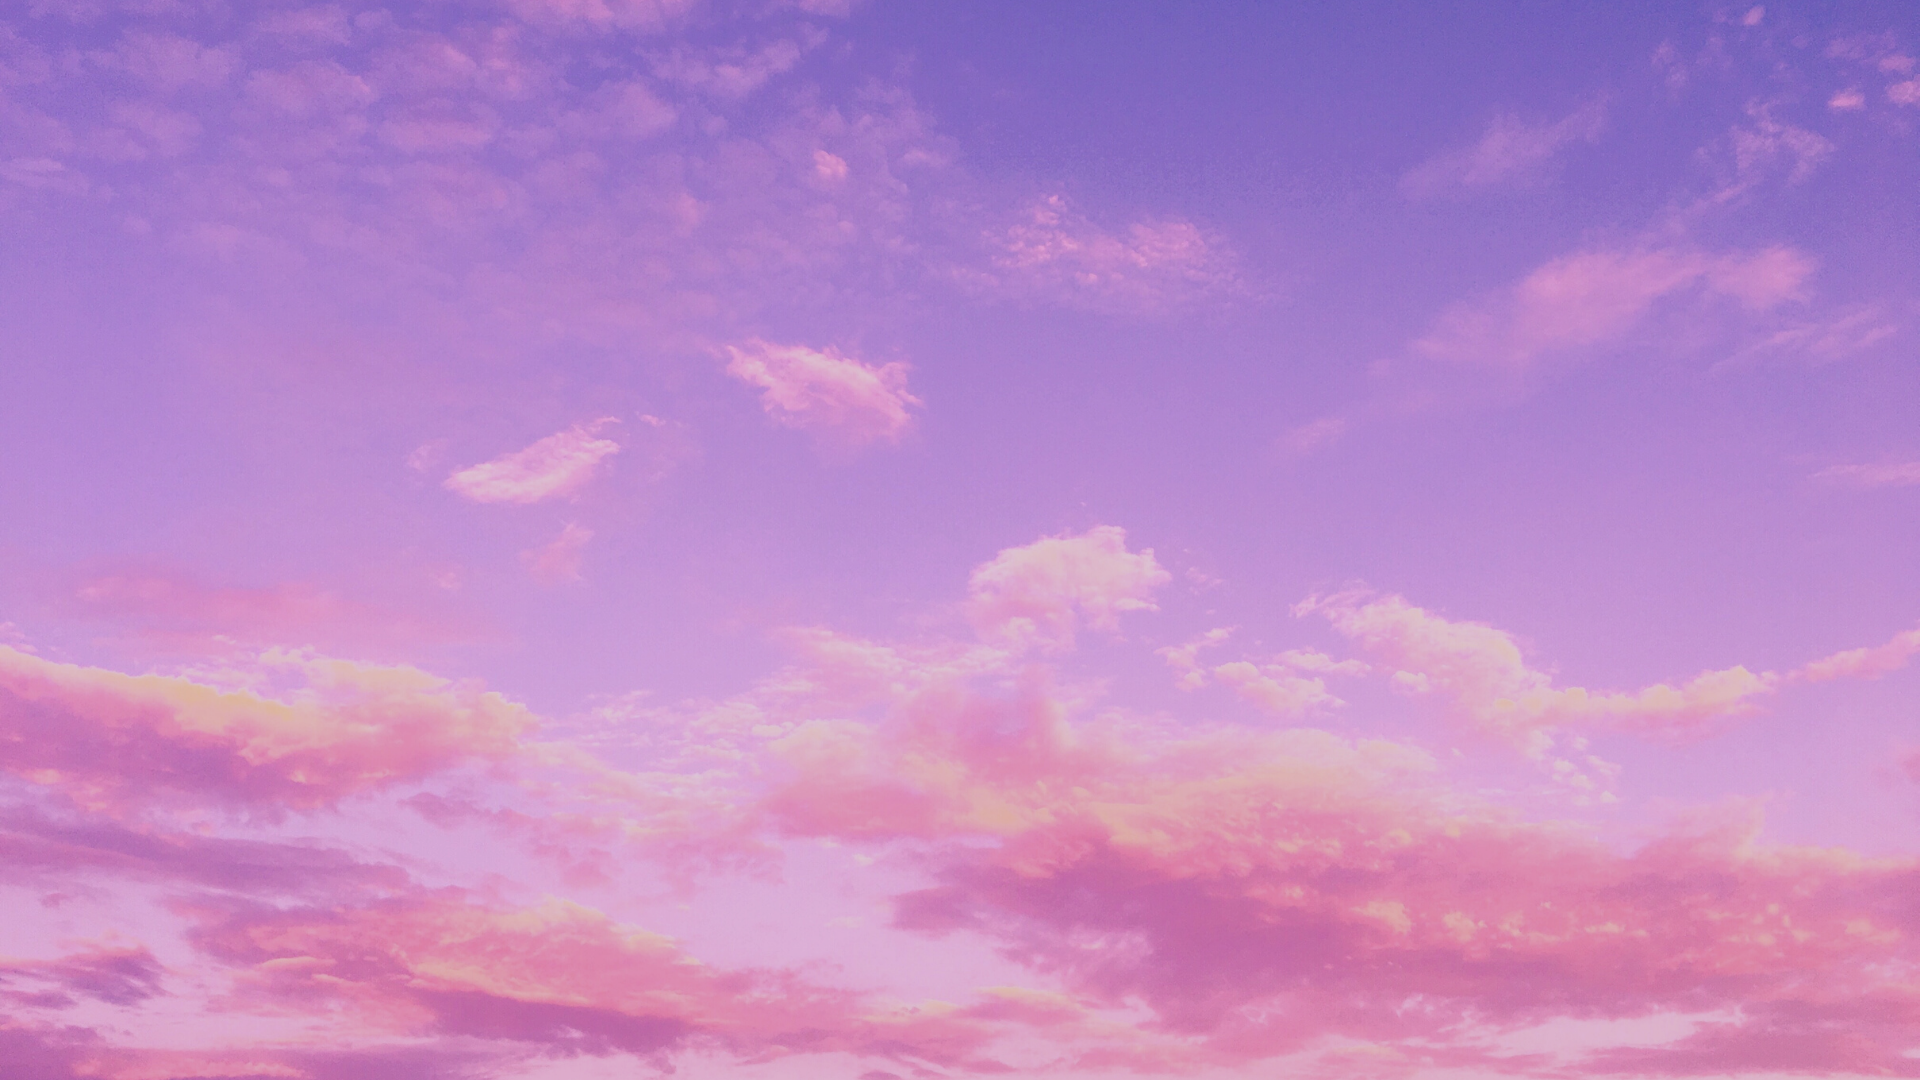 Cloudy Skies Cotton Candy Dreams Free Macbook Wallpaper Laptop And Desktop Background Aesthetic In 2020 Pink Clouds Sky Pink Clouds Wallpaper Clouds